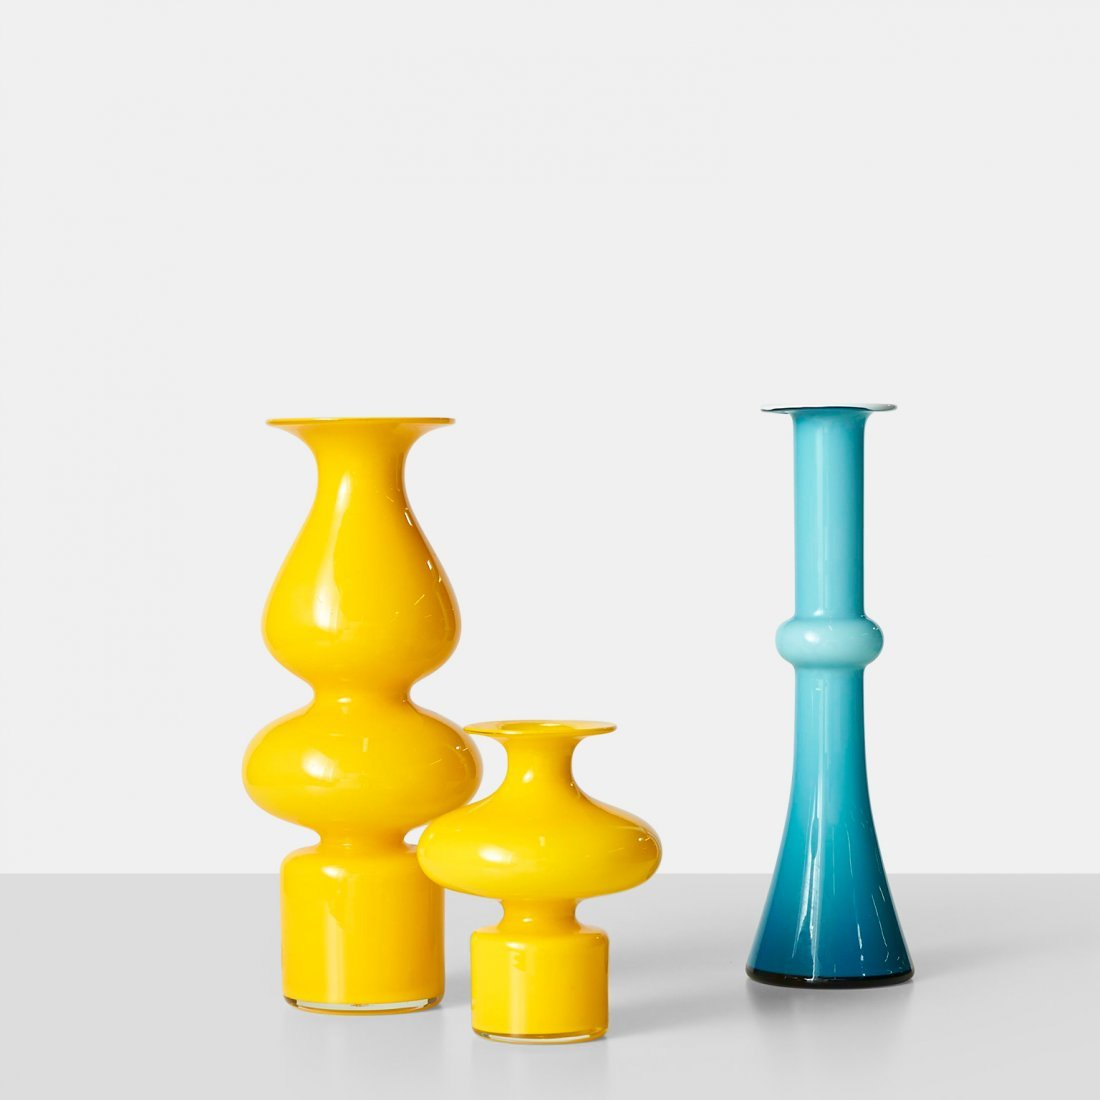 Michael Bang, Set of 3 Carnaby Vases